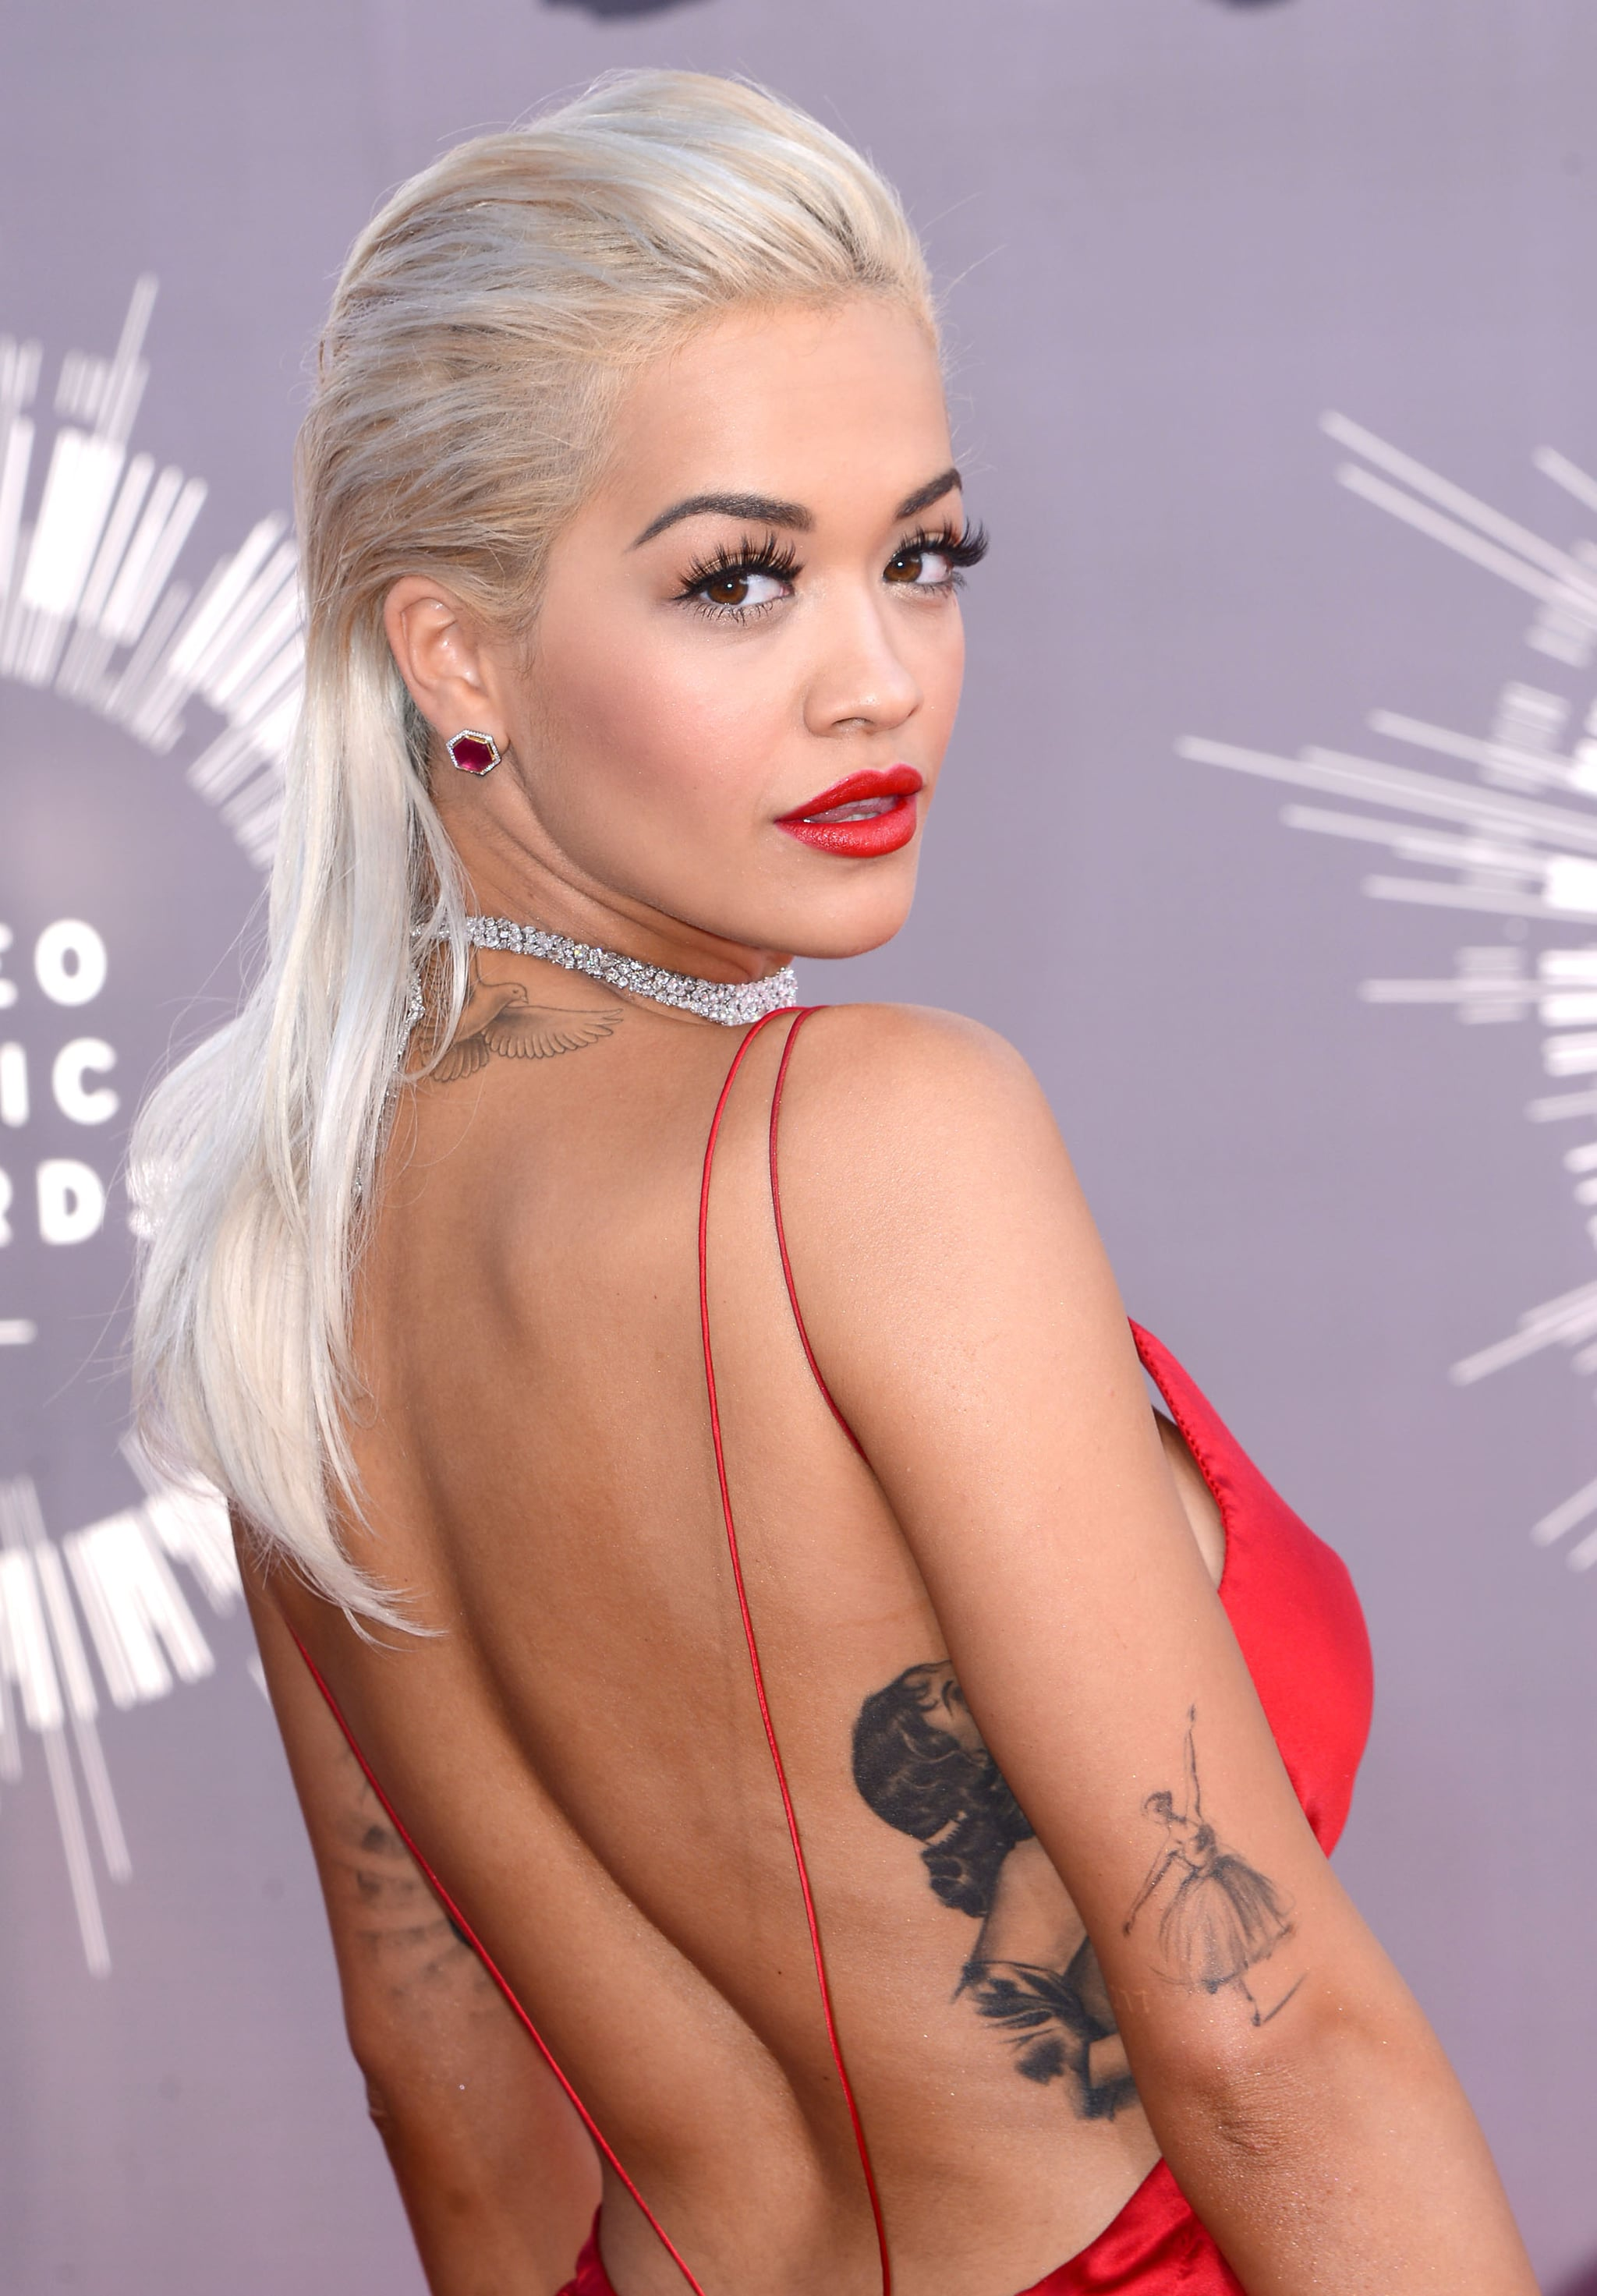 We've been pretty into chokers lately, which is why we were excited to see Rita Ora complete her Donna Karan Atelier gown with this diamond-encrusted Lorraine Schwartz necklace.